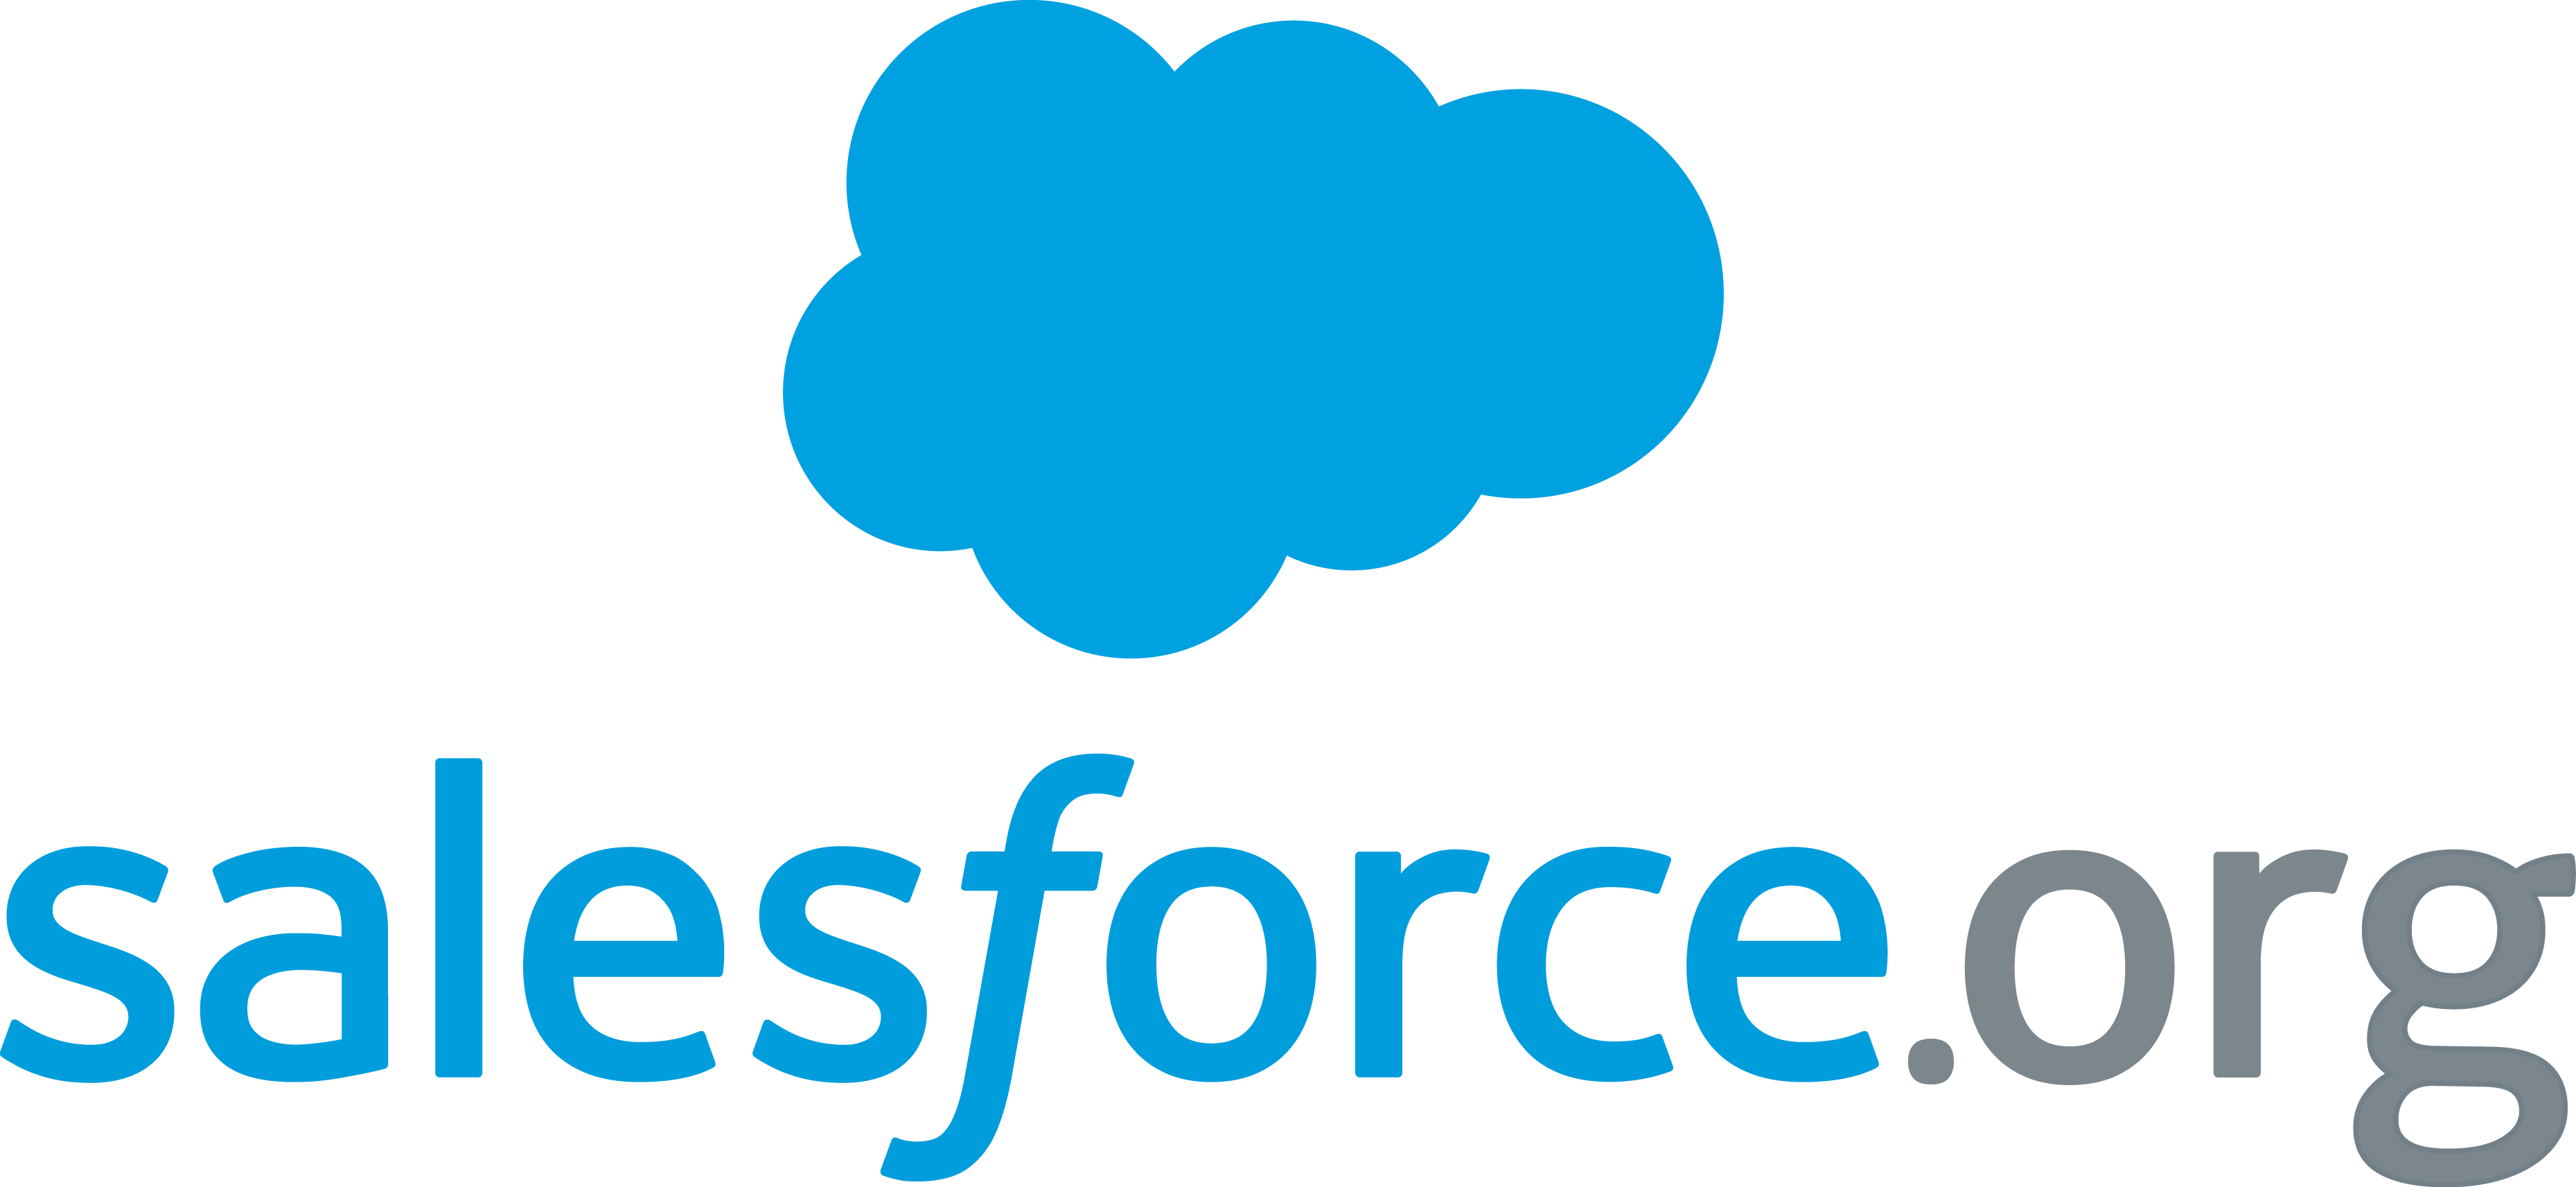 Salesforce training and certification options for salesforce salesforce training and certification options for salesforce customers power of us hub xflitez Images